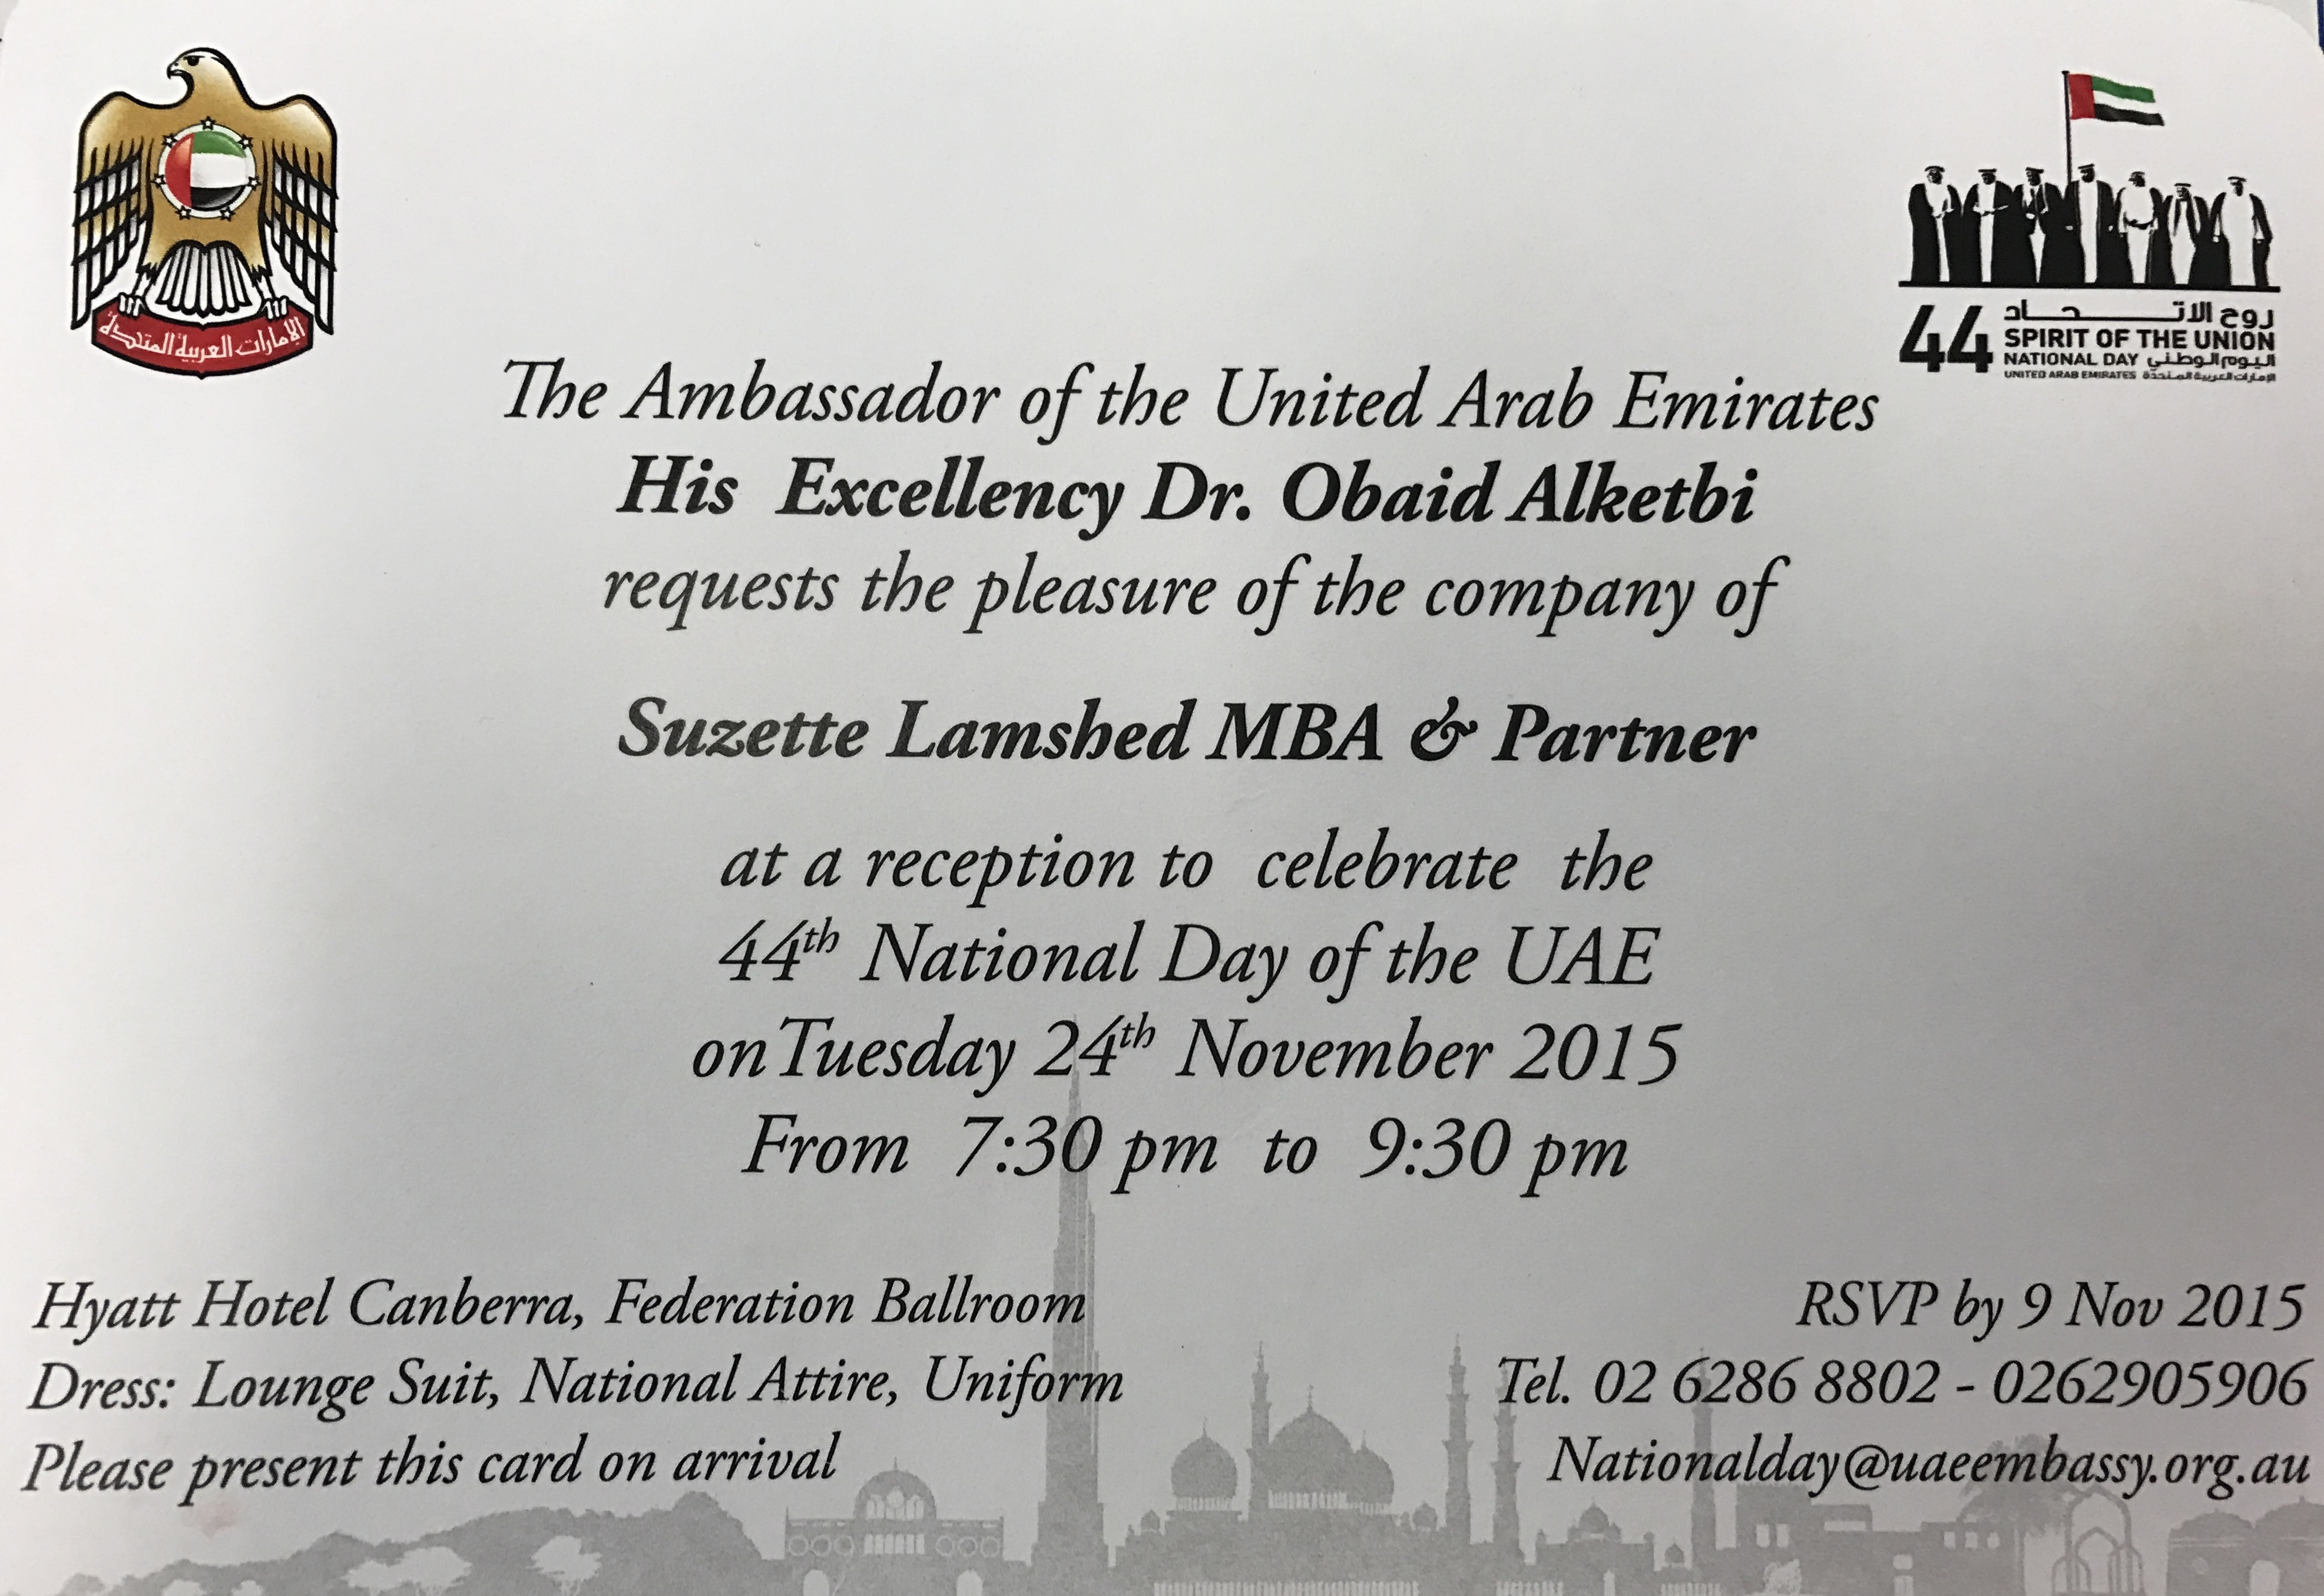 News australia business connect invitation to uae national day celebration in canberra from his excellency dr obaid alketbi ambassador to the united arab emirates uae stopboris Choice Image